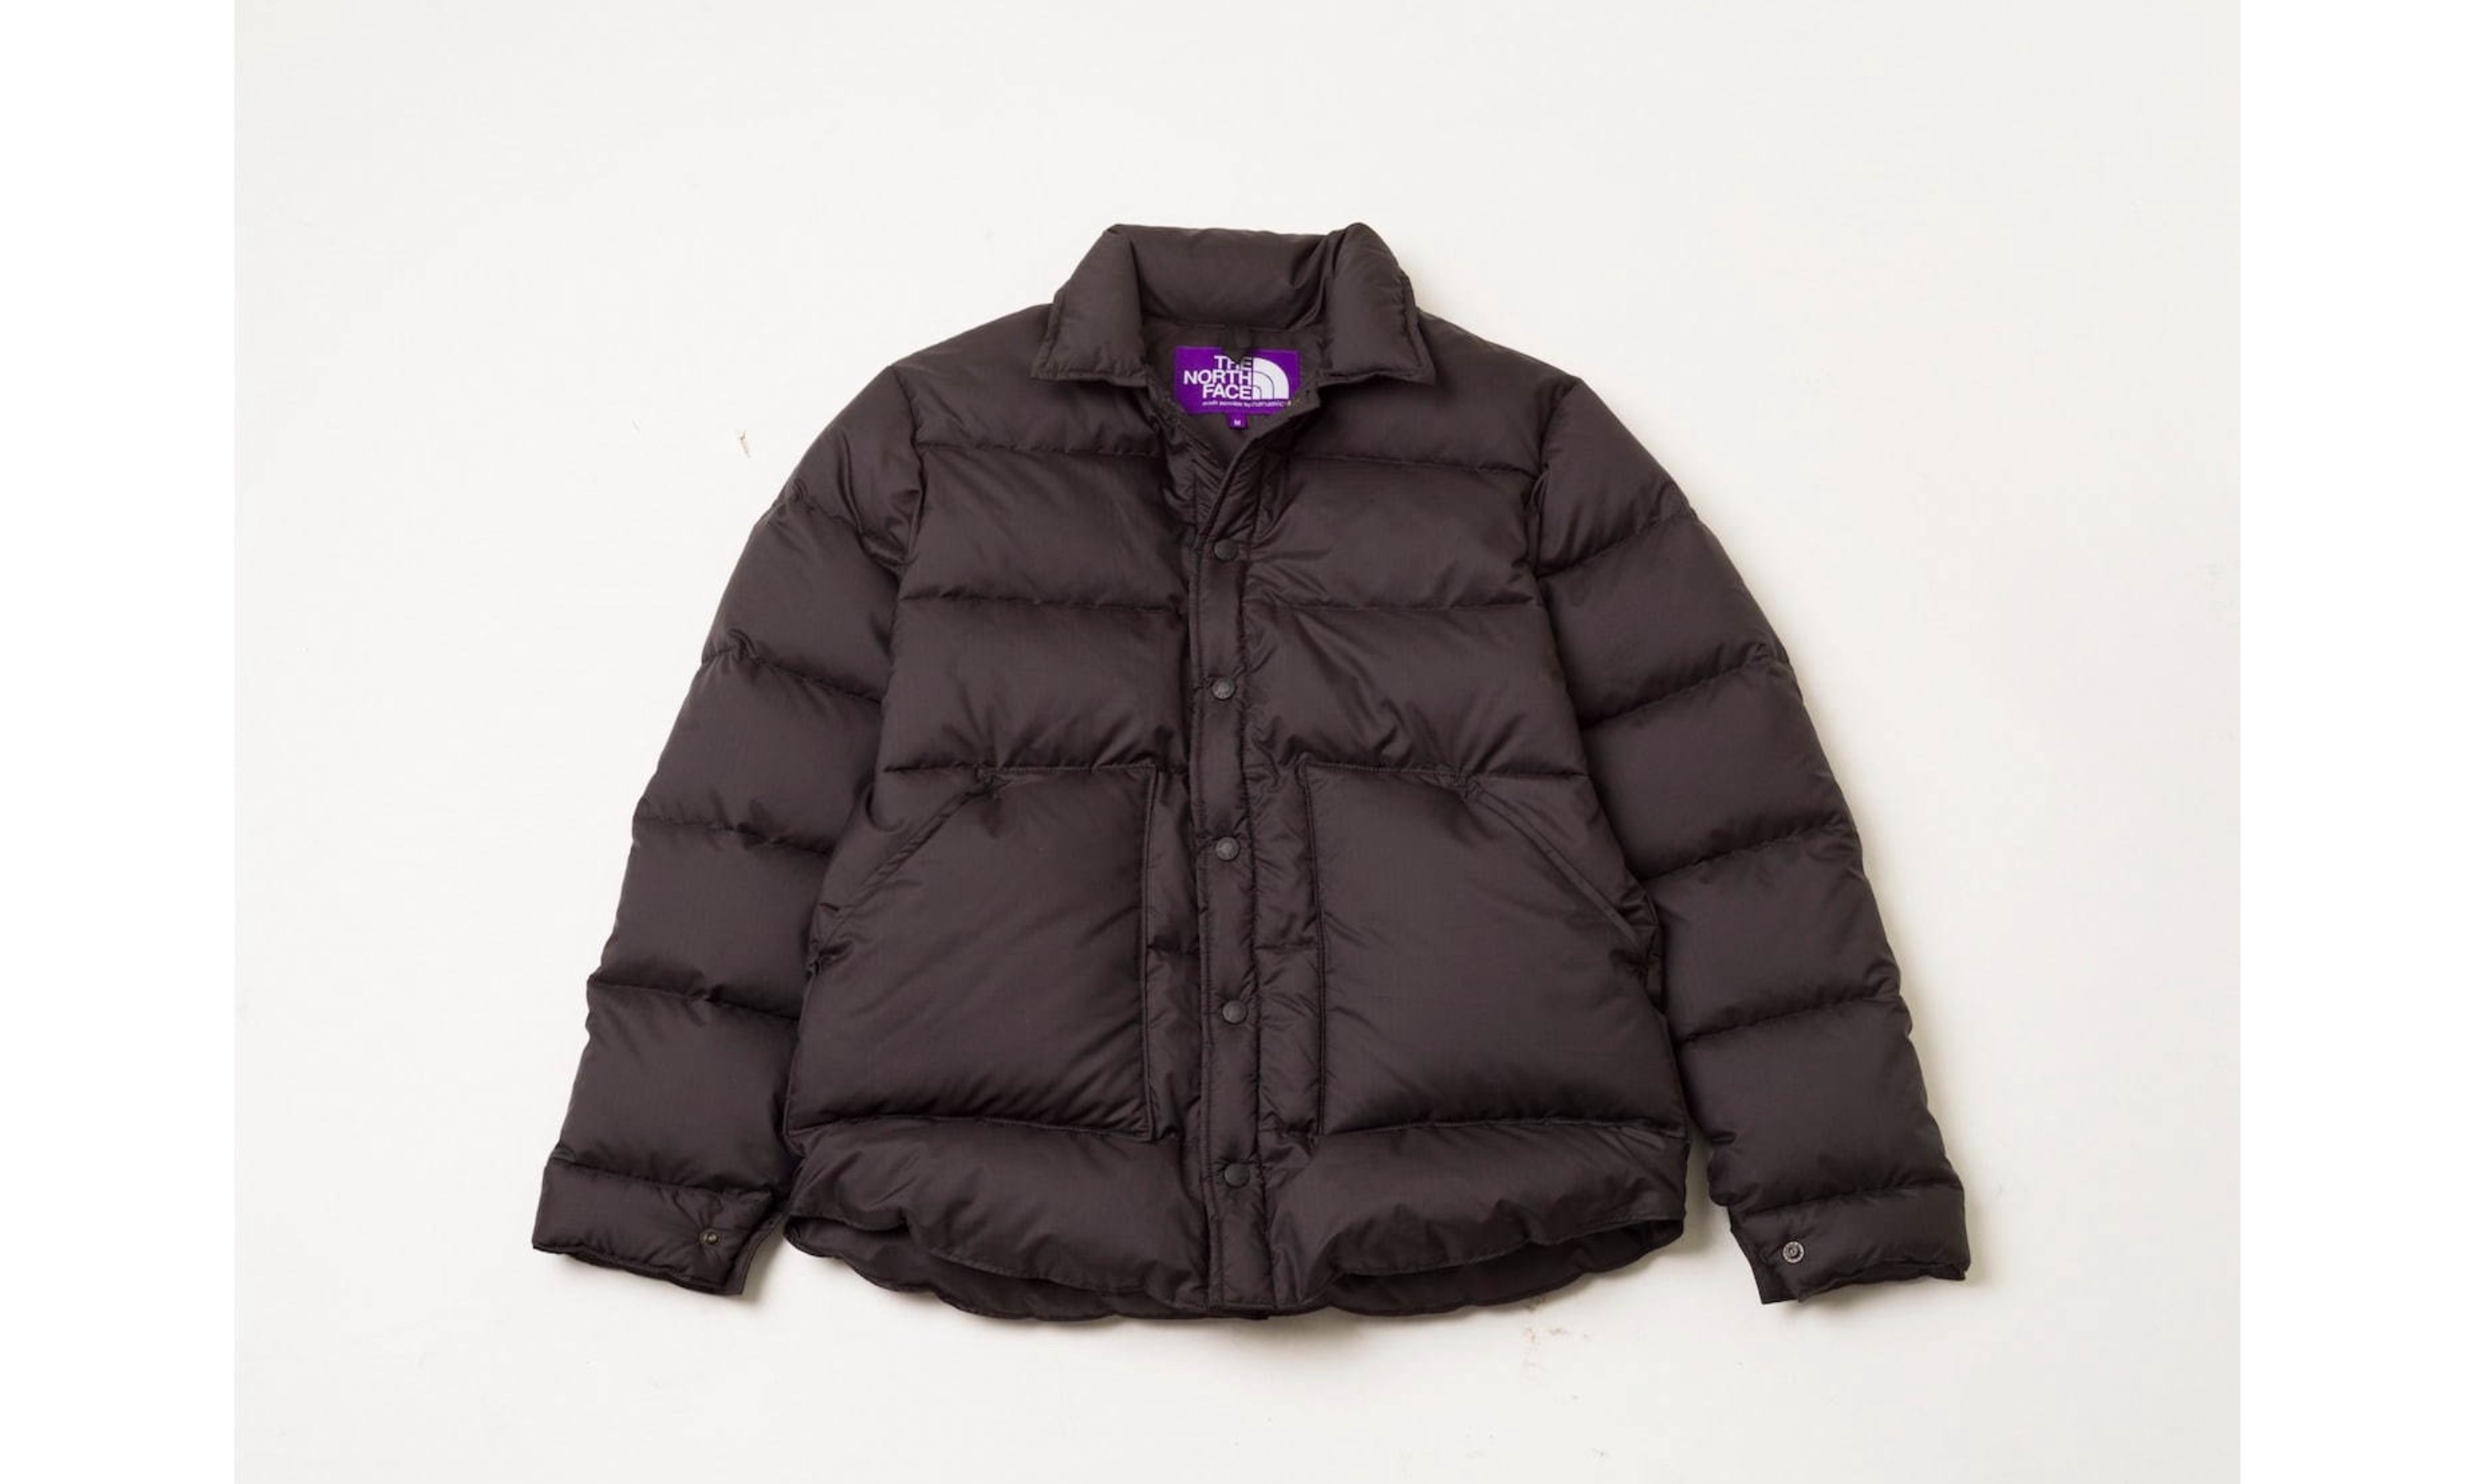 THE NORTH FACE PURPLE LABEL 与 RHC Ron Herman 联合打造衬衫式羽绒服